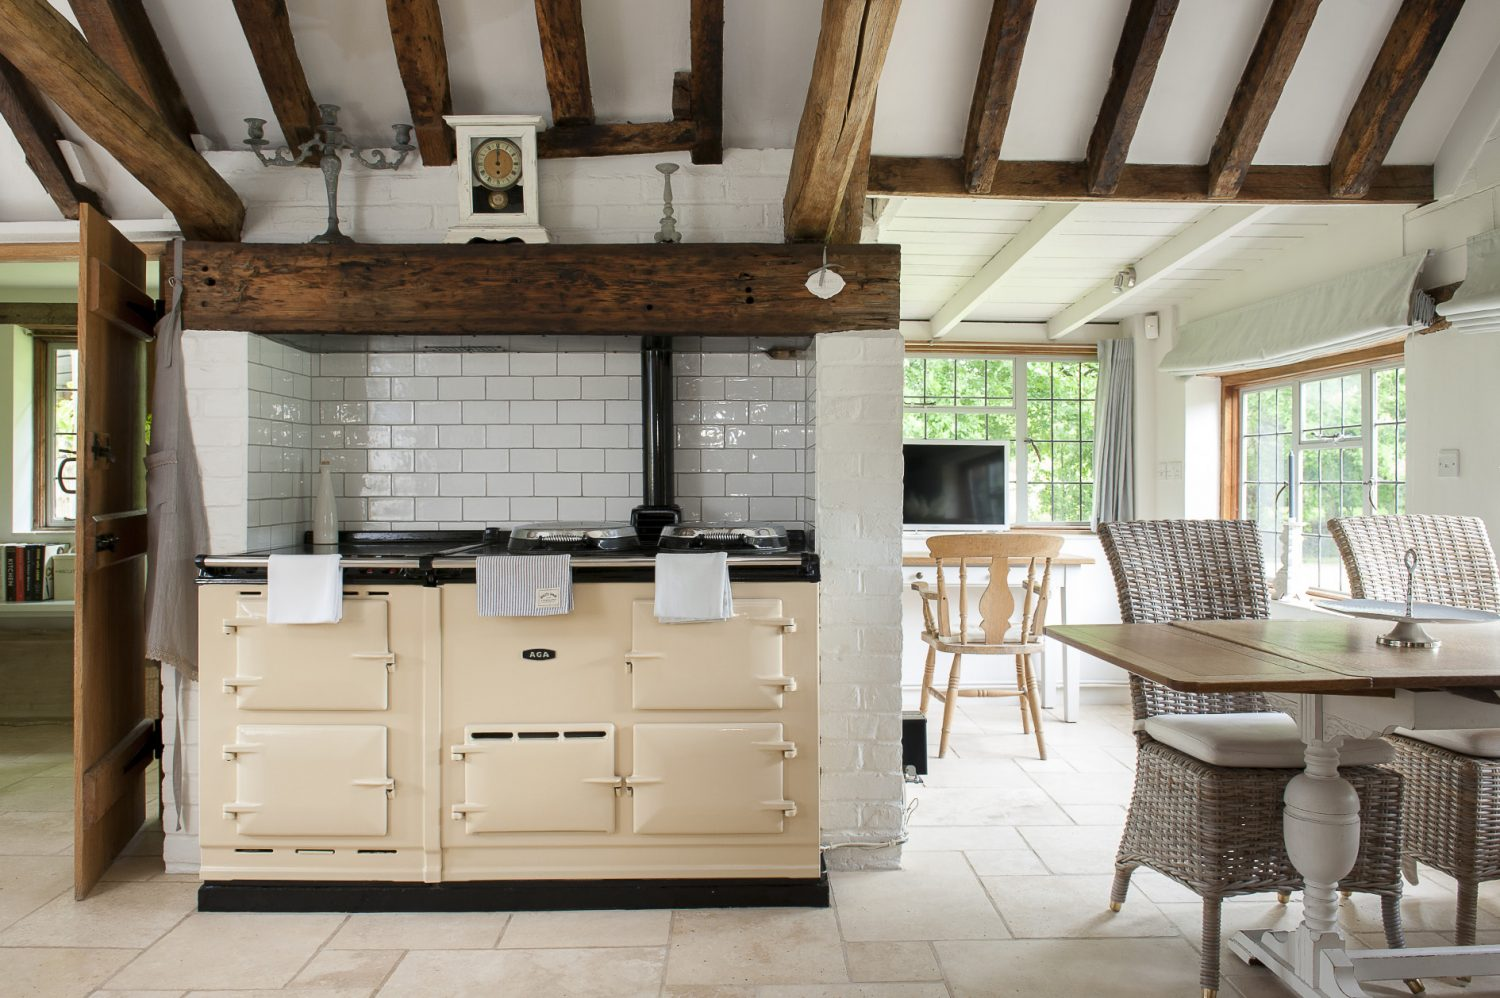 A vaulted ceiling and honey-coloured beams above the comforting cream Aga help to make the room feel light and airy. An old clock on the bressumer above the Aga belonged to Mark's parents and was once natural wood. It was given a distressed white finish by Tara